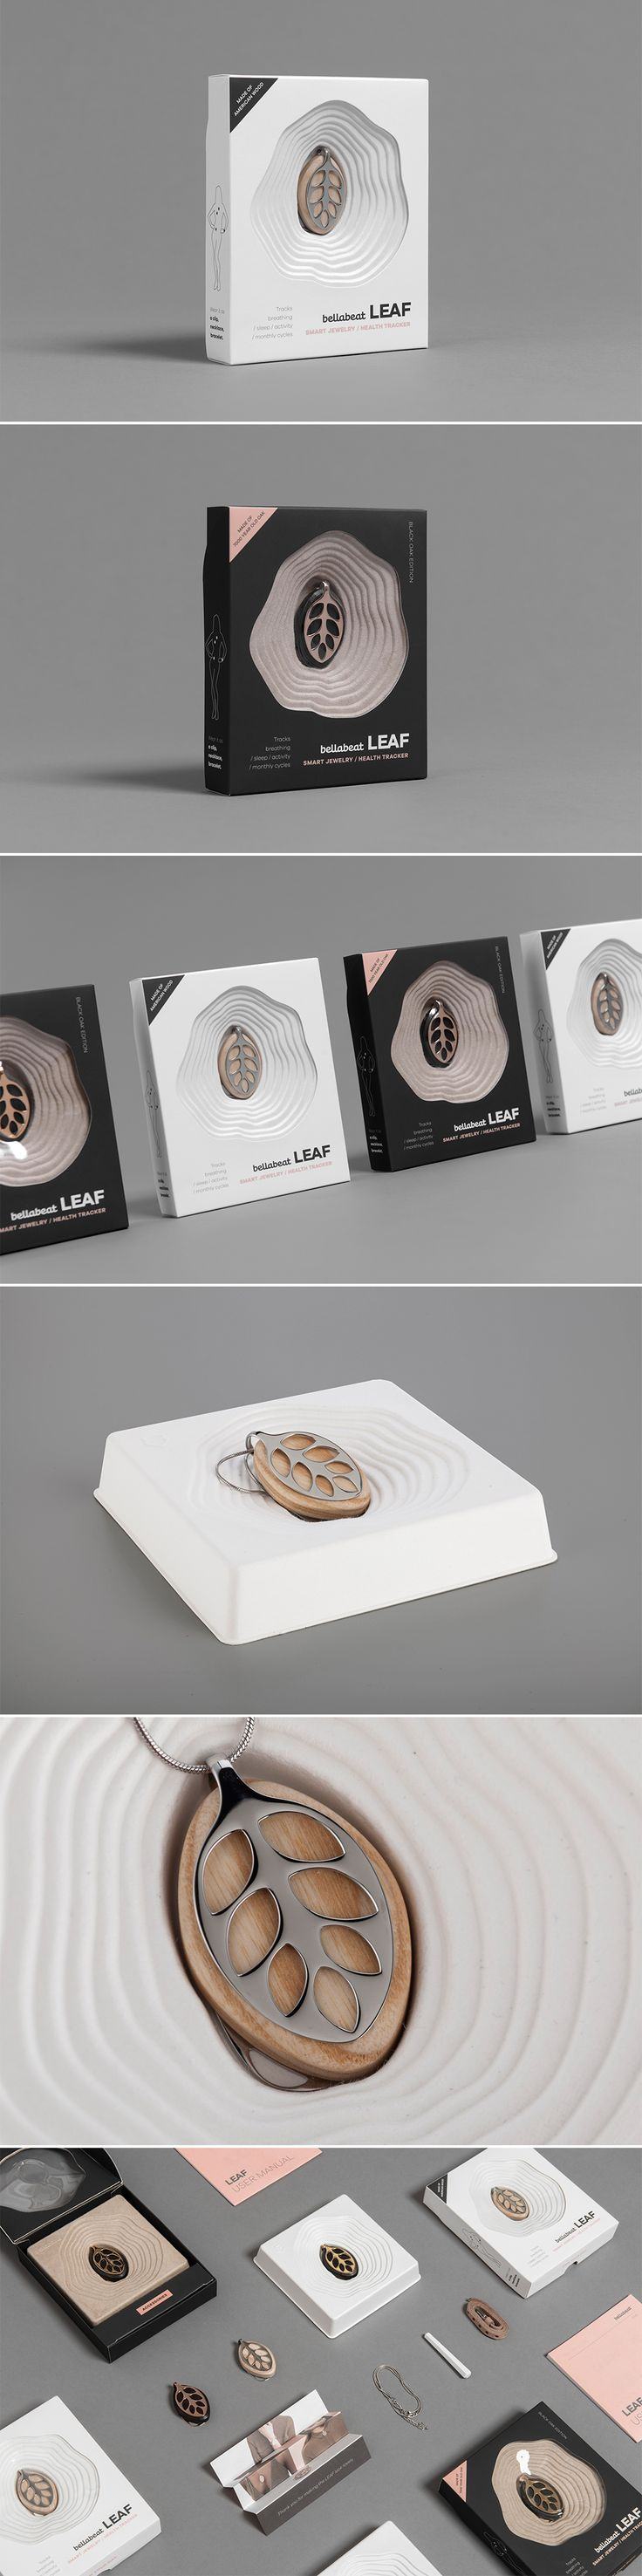 Packaging for Bellabeat LEAF - Silver Edition and Rose Gold Edition.    Product design: Urška Sršen & Urška Hvalica / Packaging design: Ana Rimac, Iva Jankov, Rebeka Vegelj